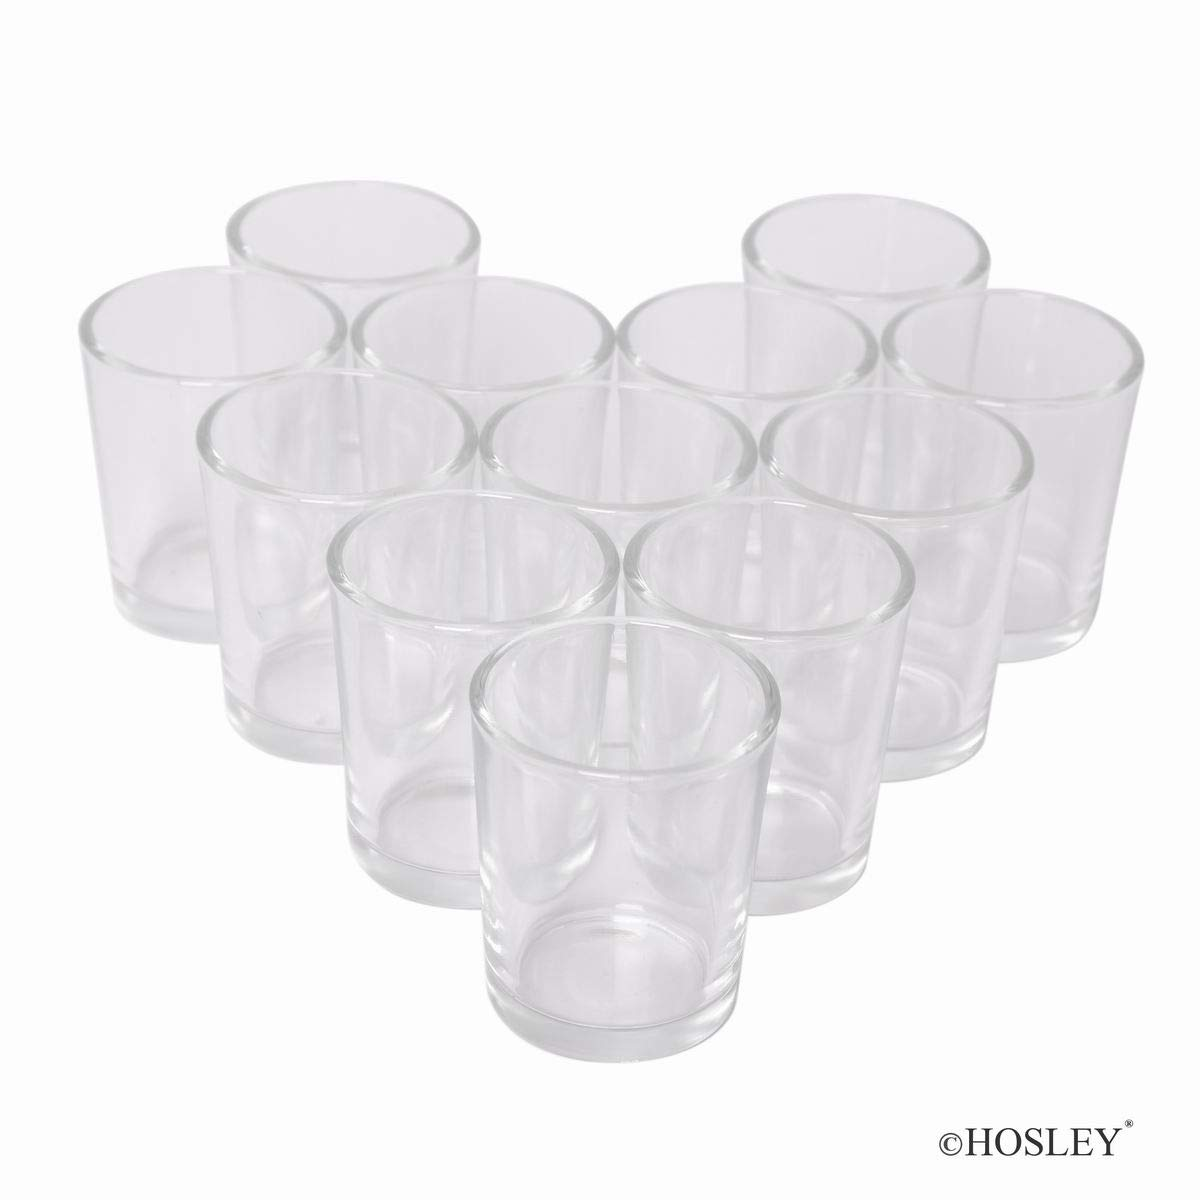 Hosley Set of 72 Clear Votive Tea Light Glass Candle Holders. Ideal for Parties Wedding Special Events Aromatherapy and Everyday Use Tealights O2 by Hosley